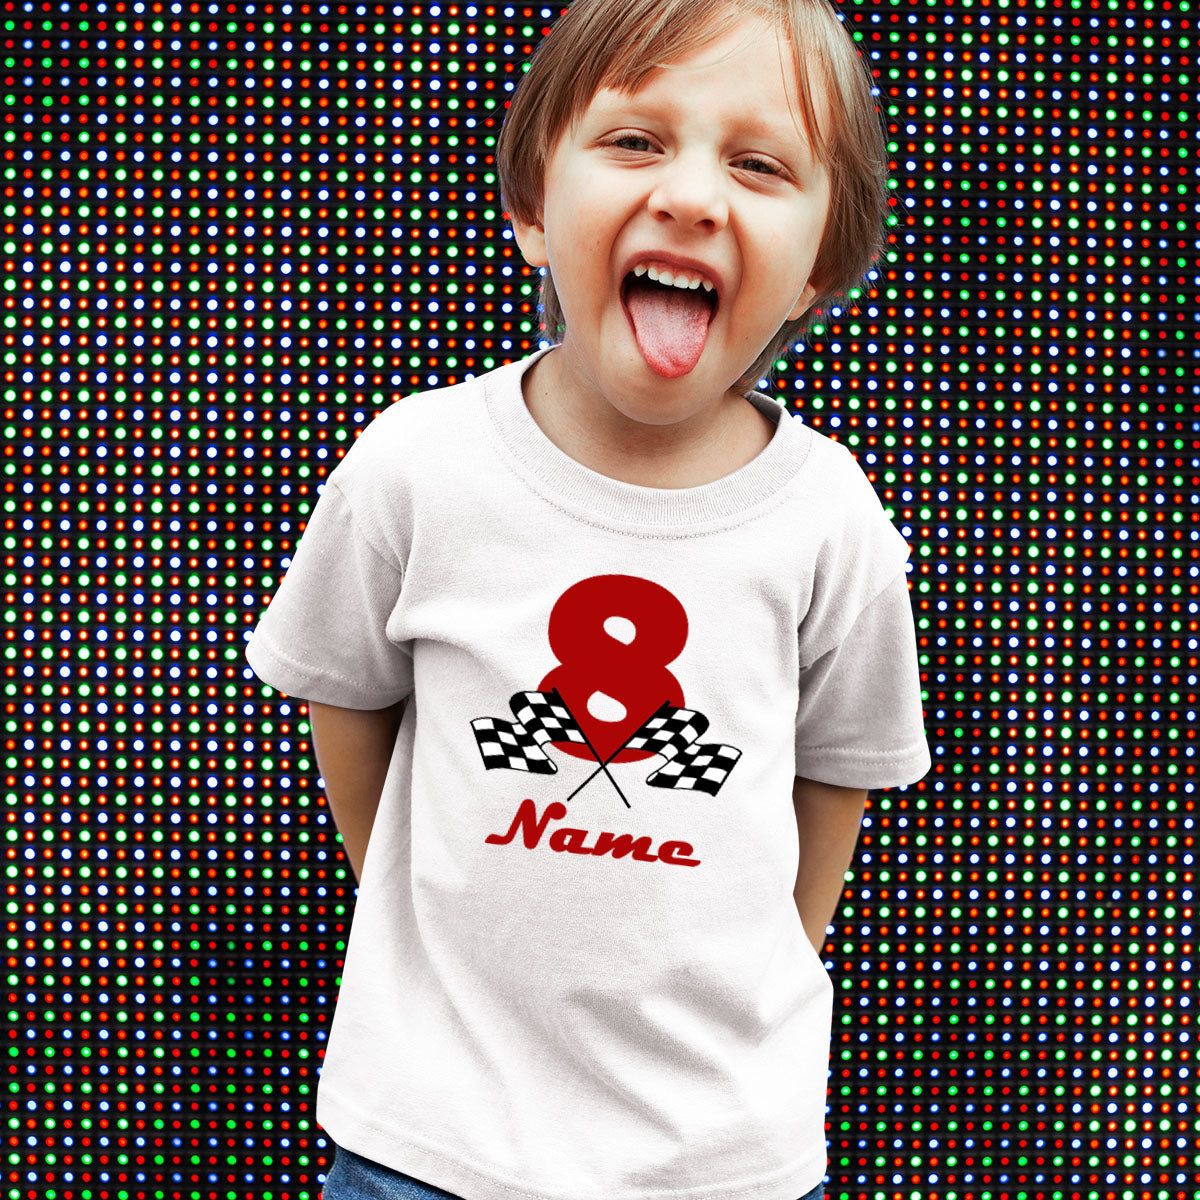 Sprinklecart Race Flag Birthday T Shirt | Perfect 8th Birthday Gift